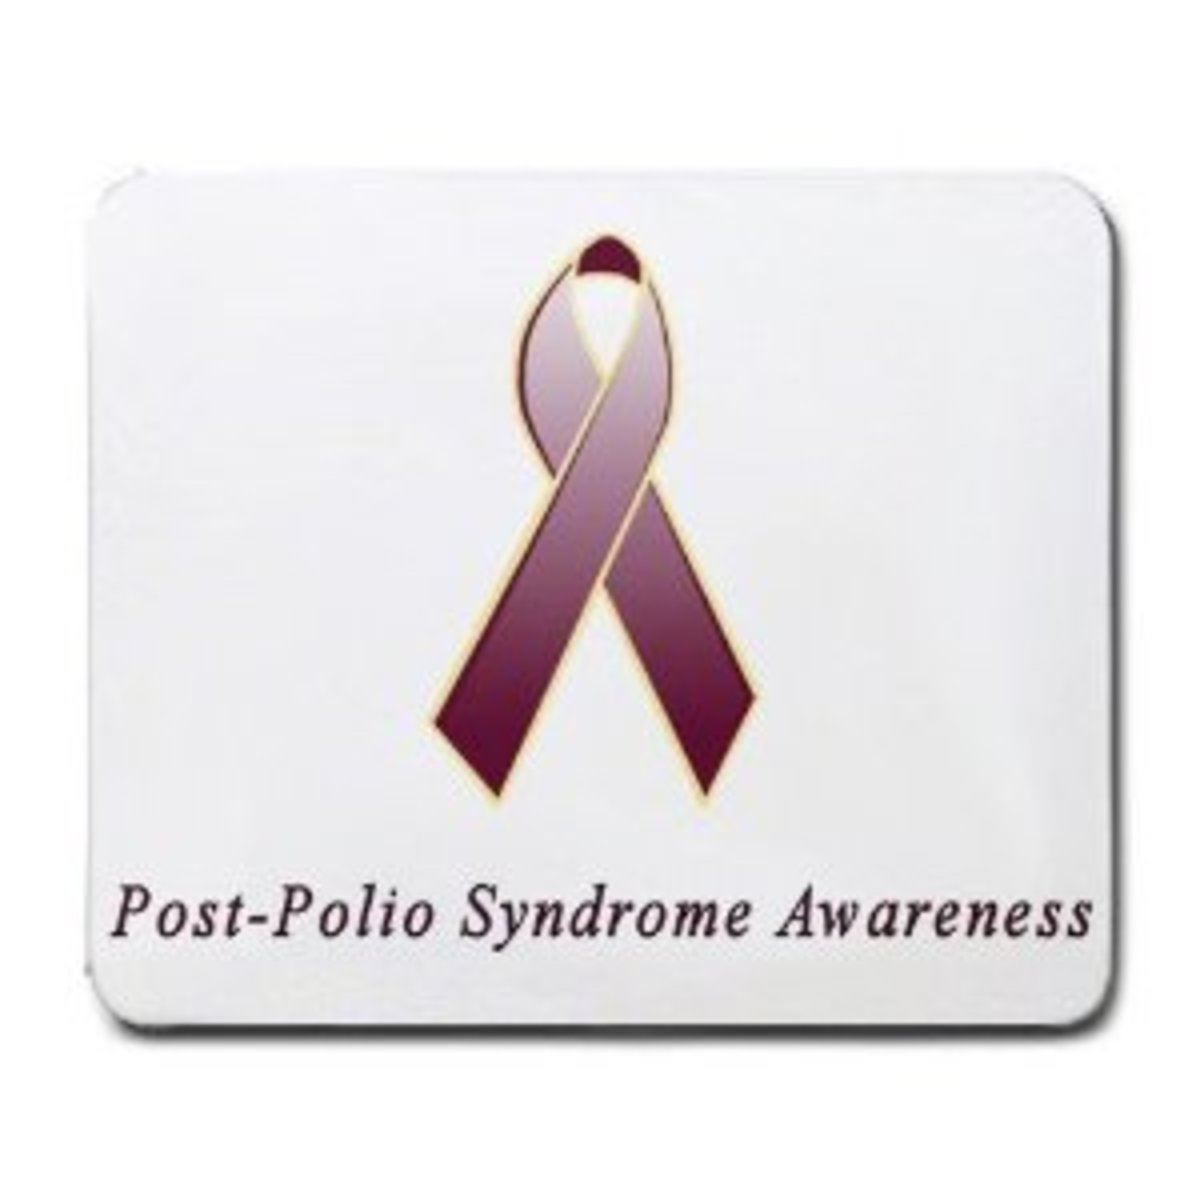 Post-Polio Syndrome (PPS) - It's Not Just About Getting Older